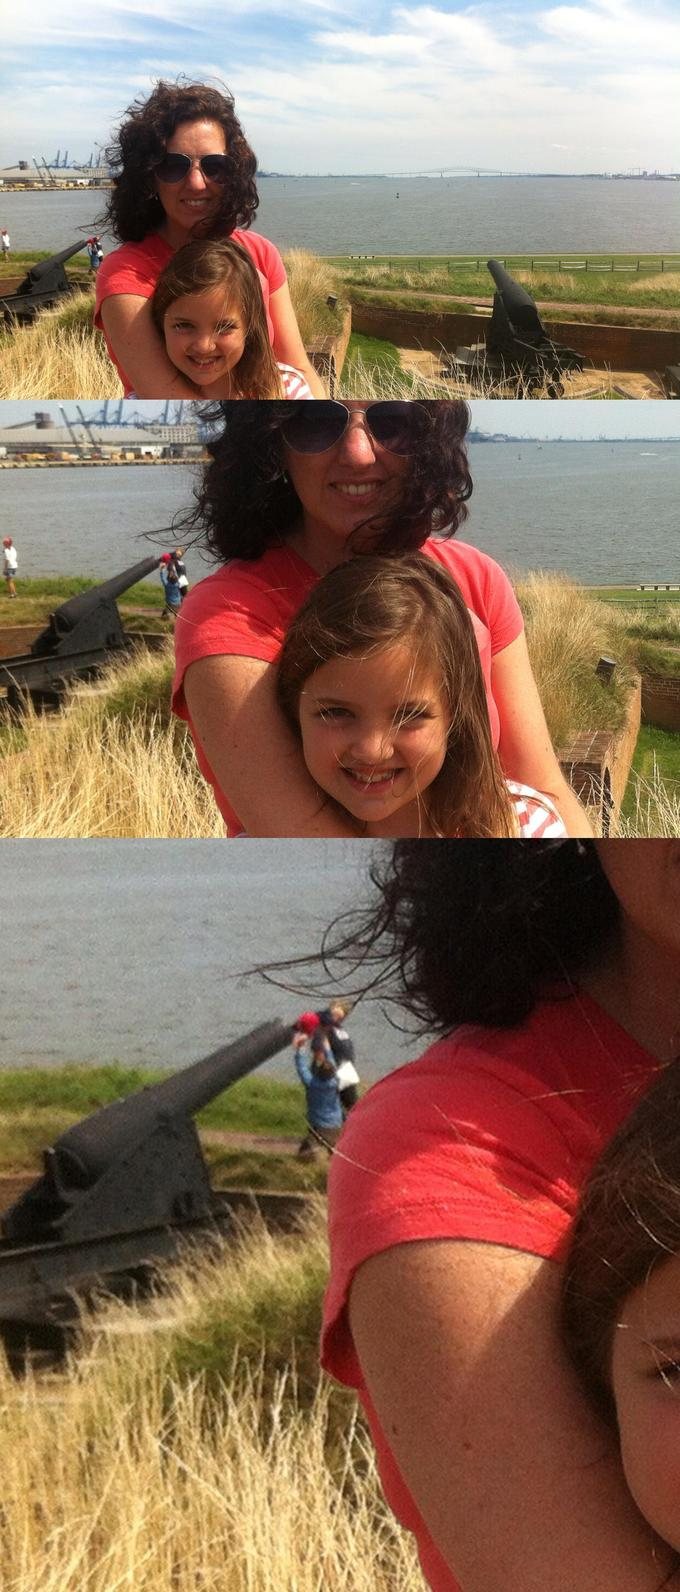 Some friends took a picture and later realized that the people in the background were stuffing a baby in a cannon.